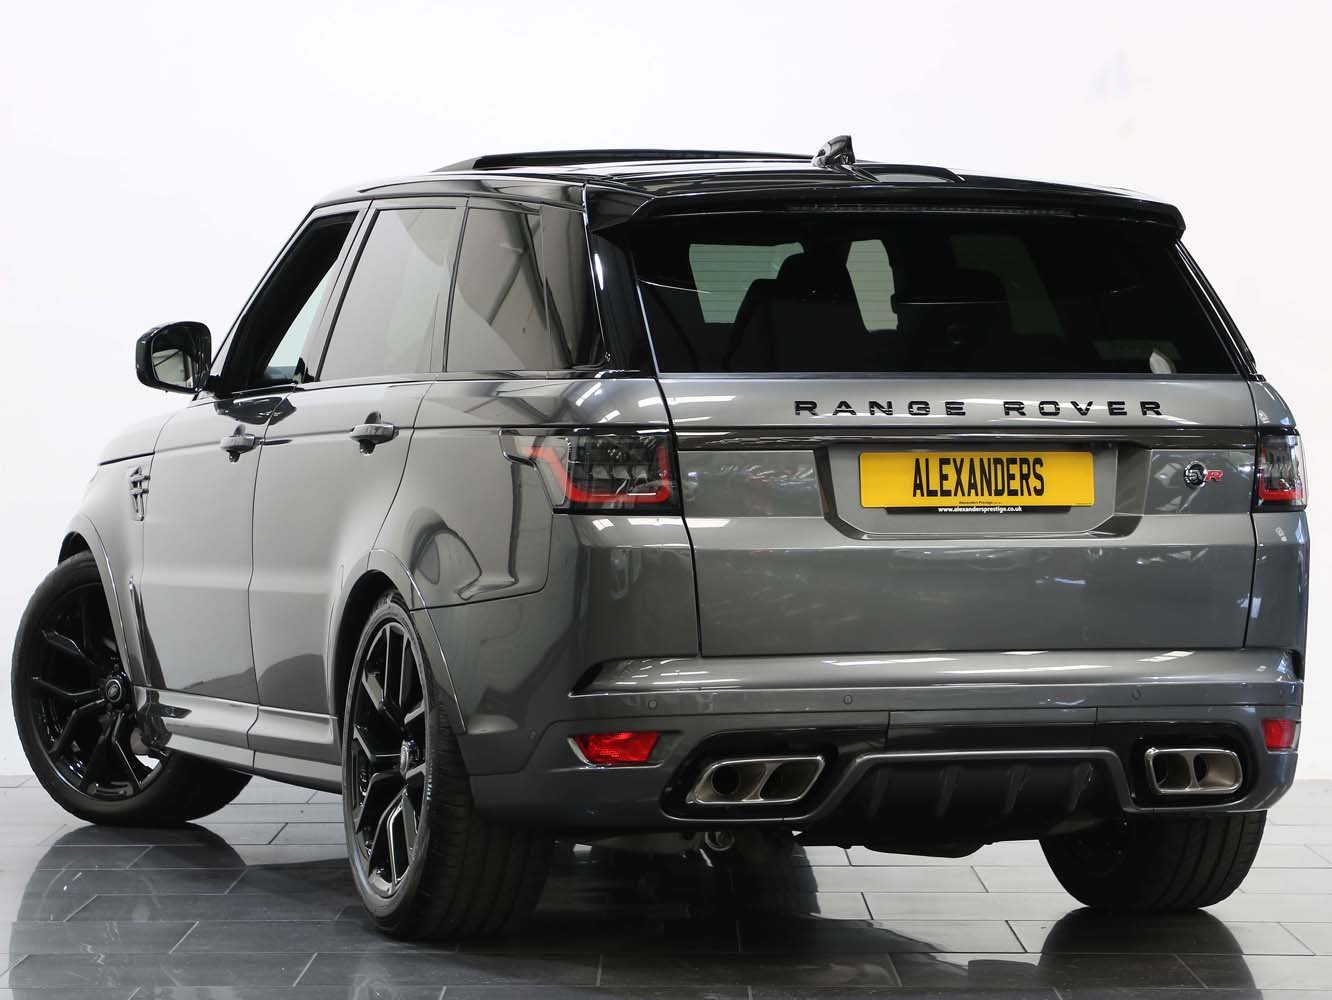 2019 19 RANGE ROVER SPORT SVR 5.0 V8 AUTO For Sale (picture 3 of 6)